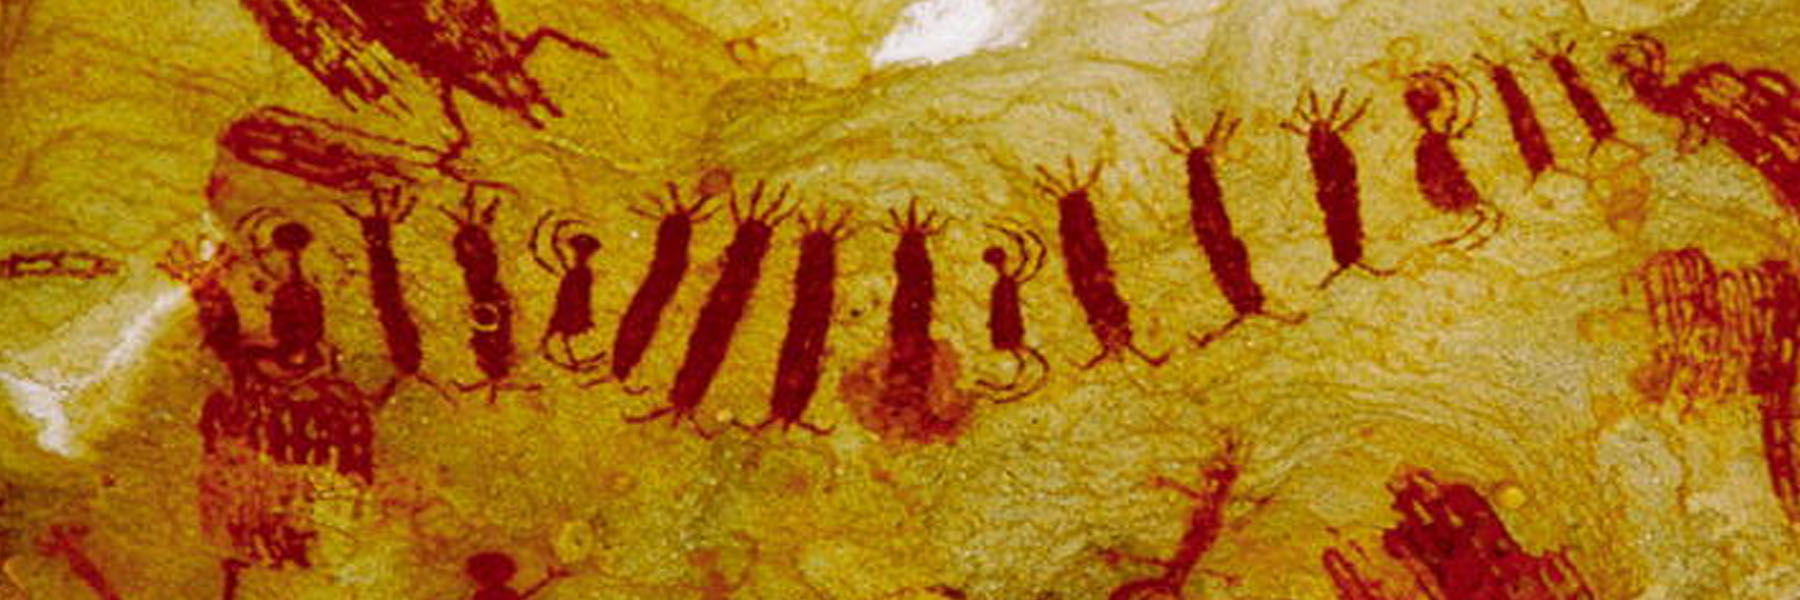 The Serra de Capivara Cave Paintings